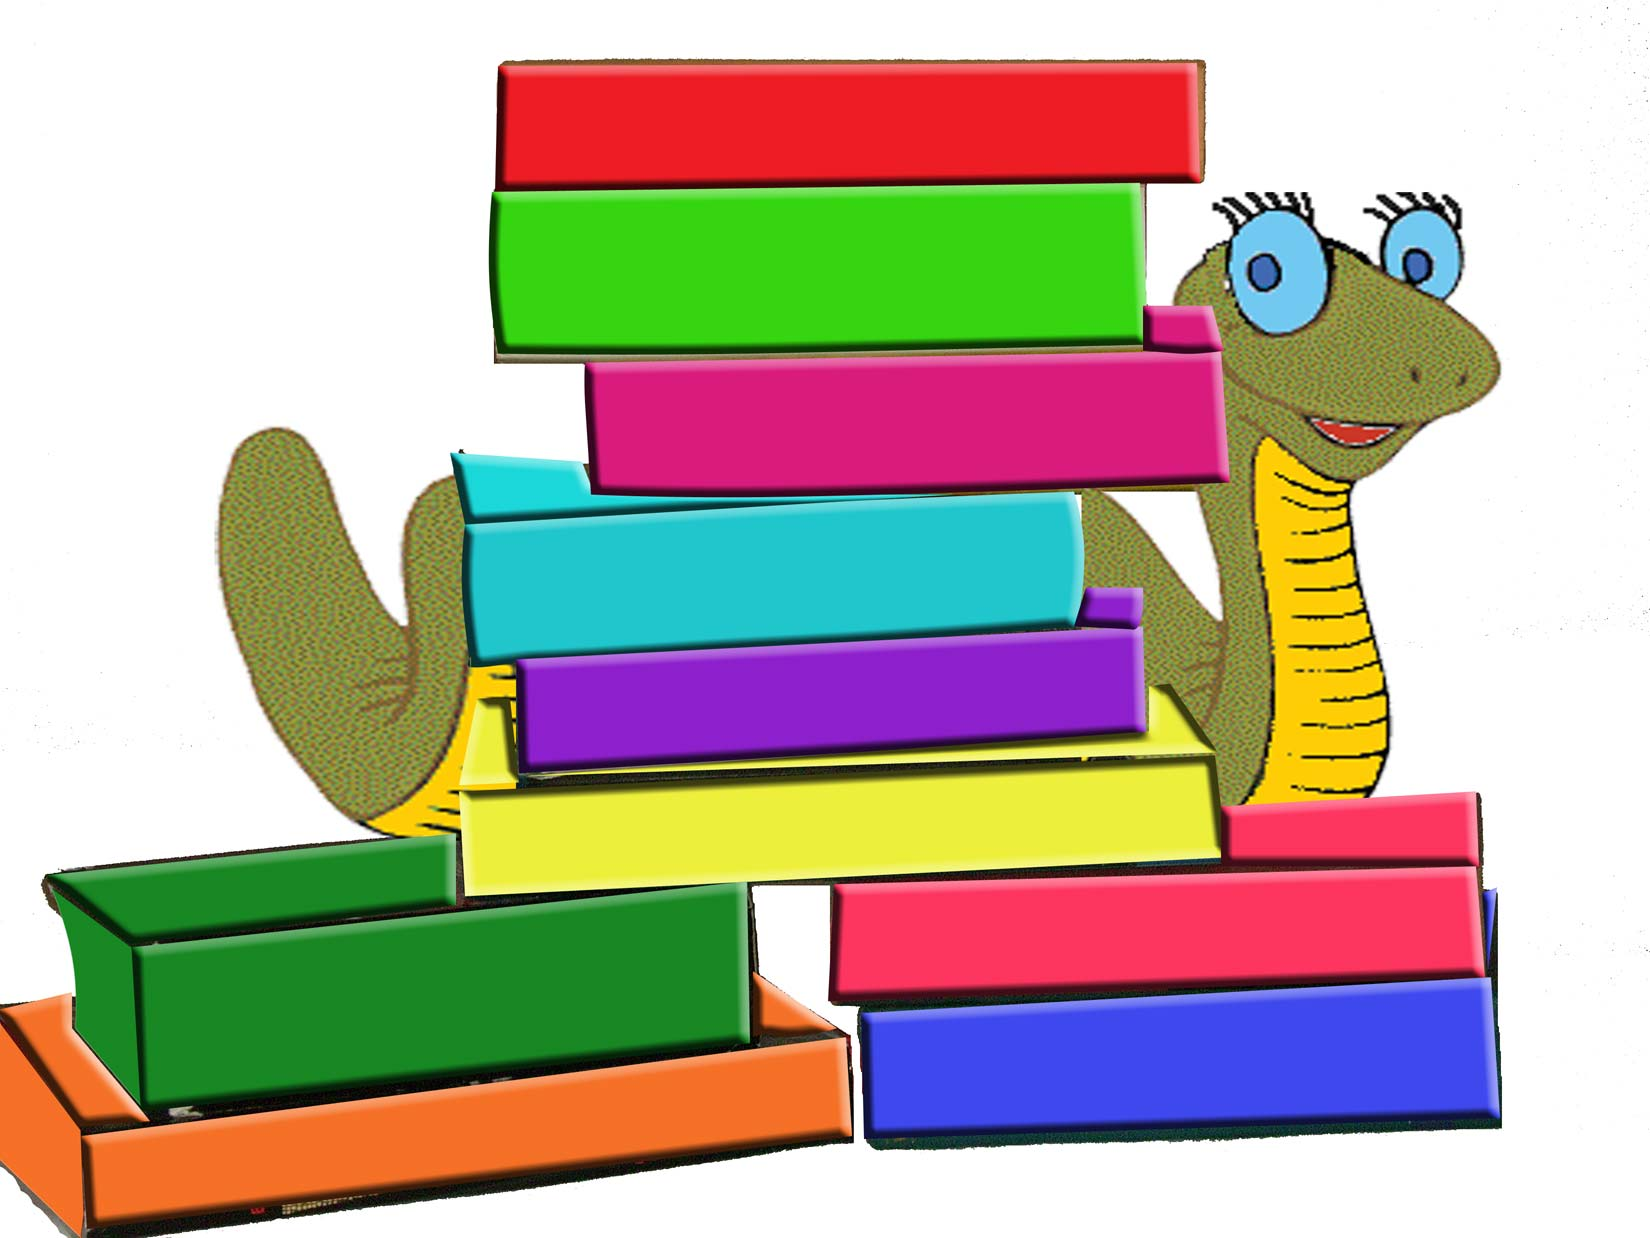 1650x1238 Stack Of Books Image Of Stack Books Clipart A Of Clip Art 2